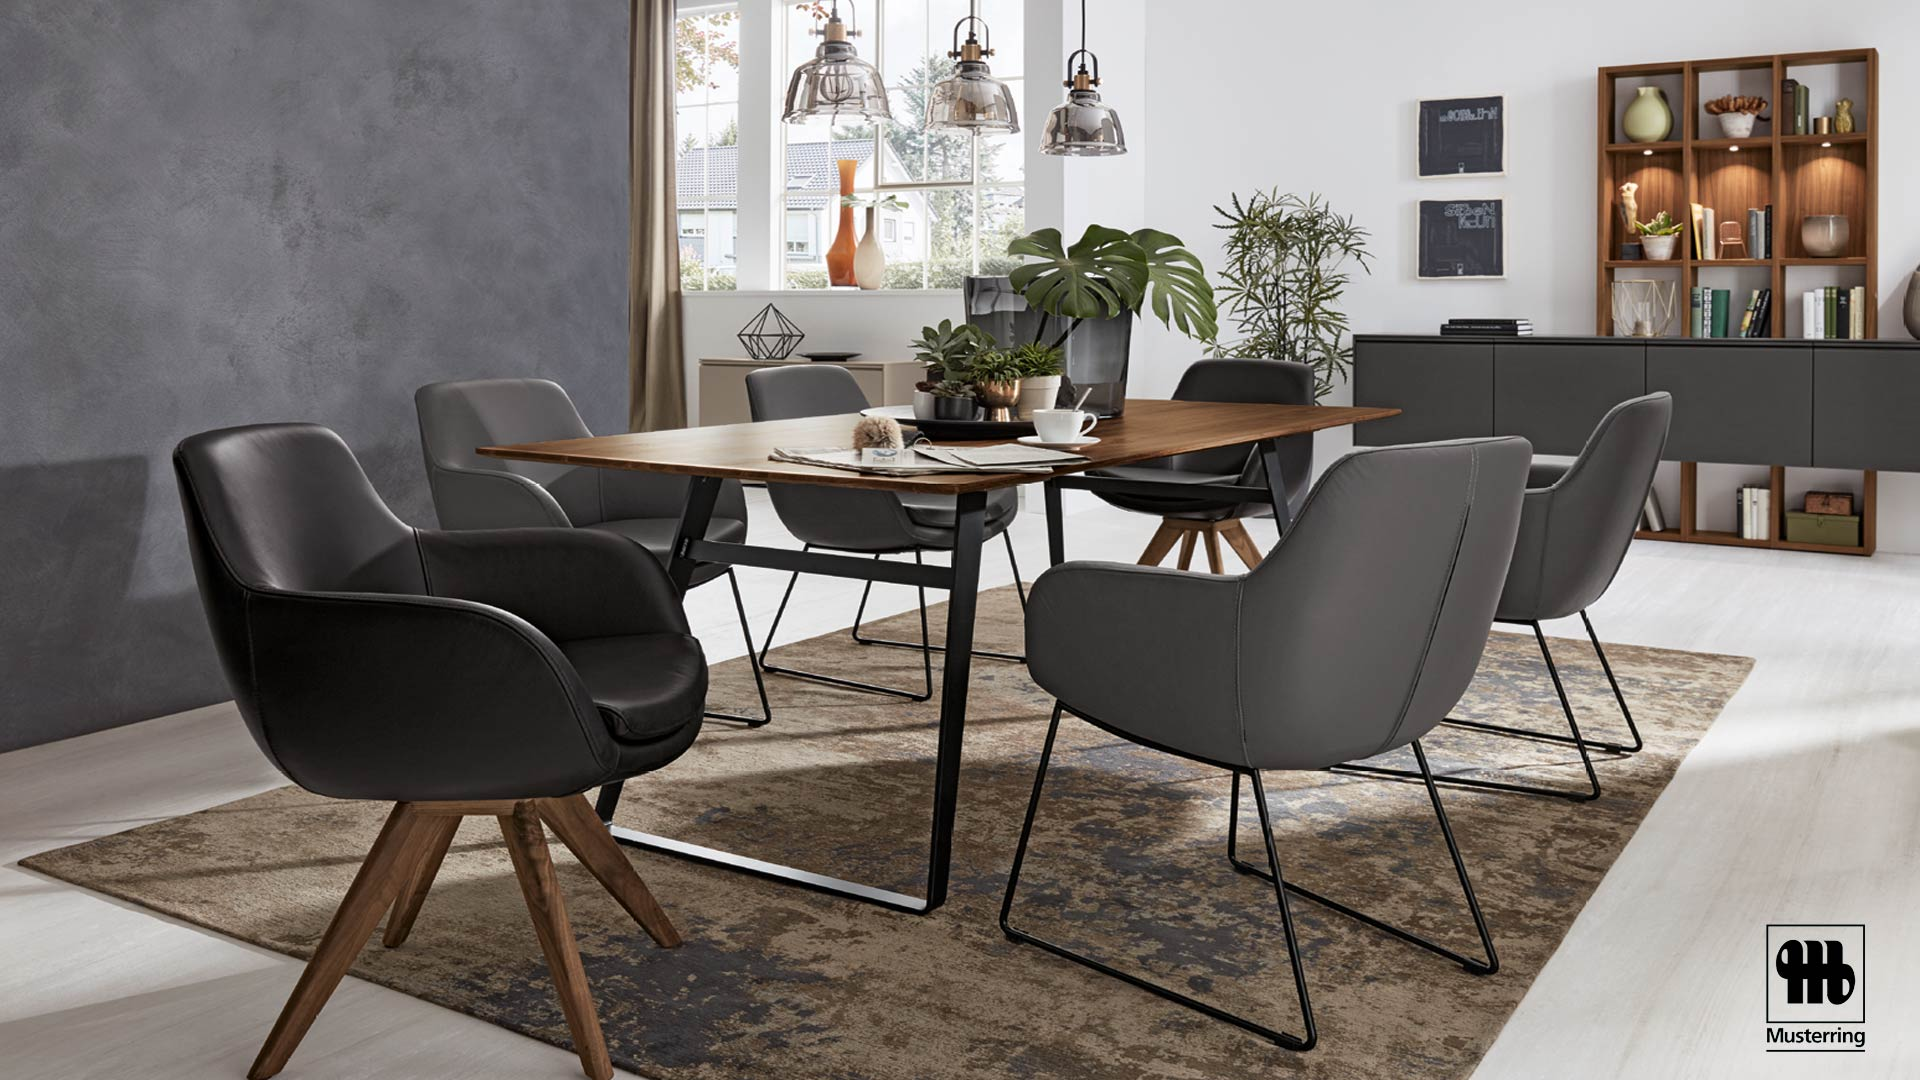 Mbel de sofa beautiful latest ideen sofa ole gunderson for Couch regensburg